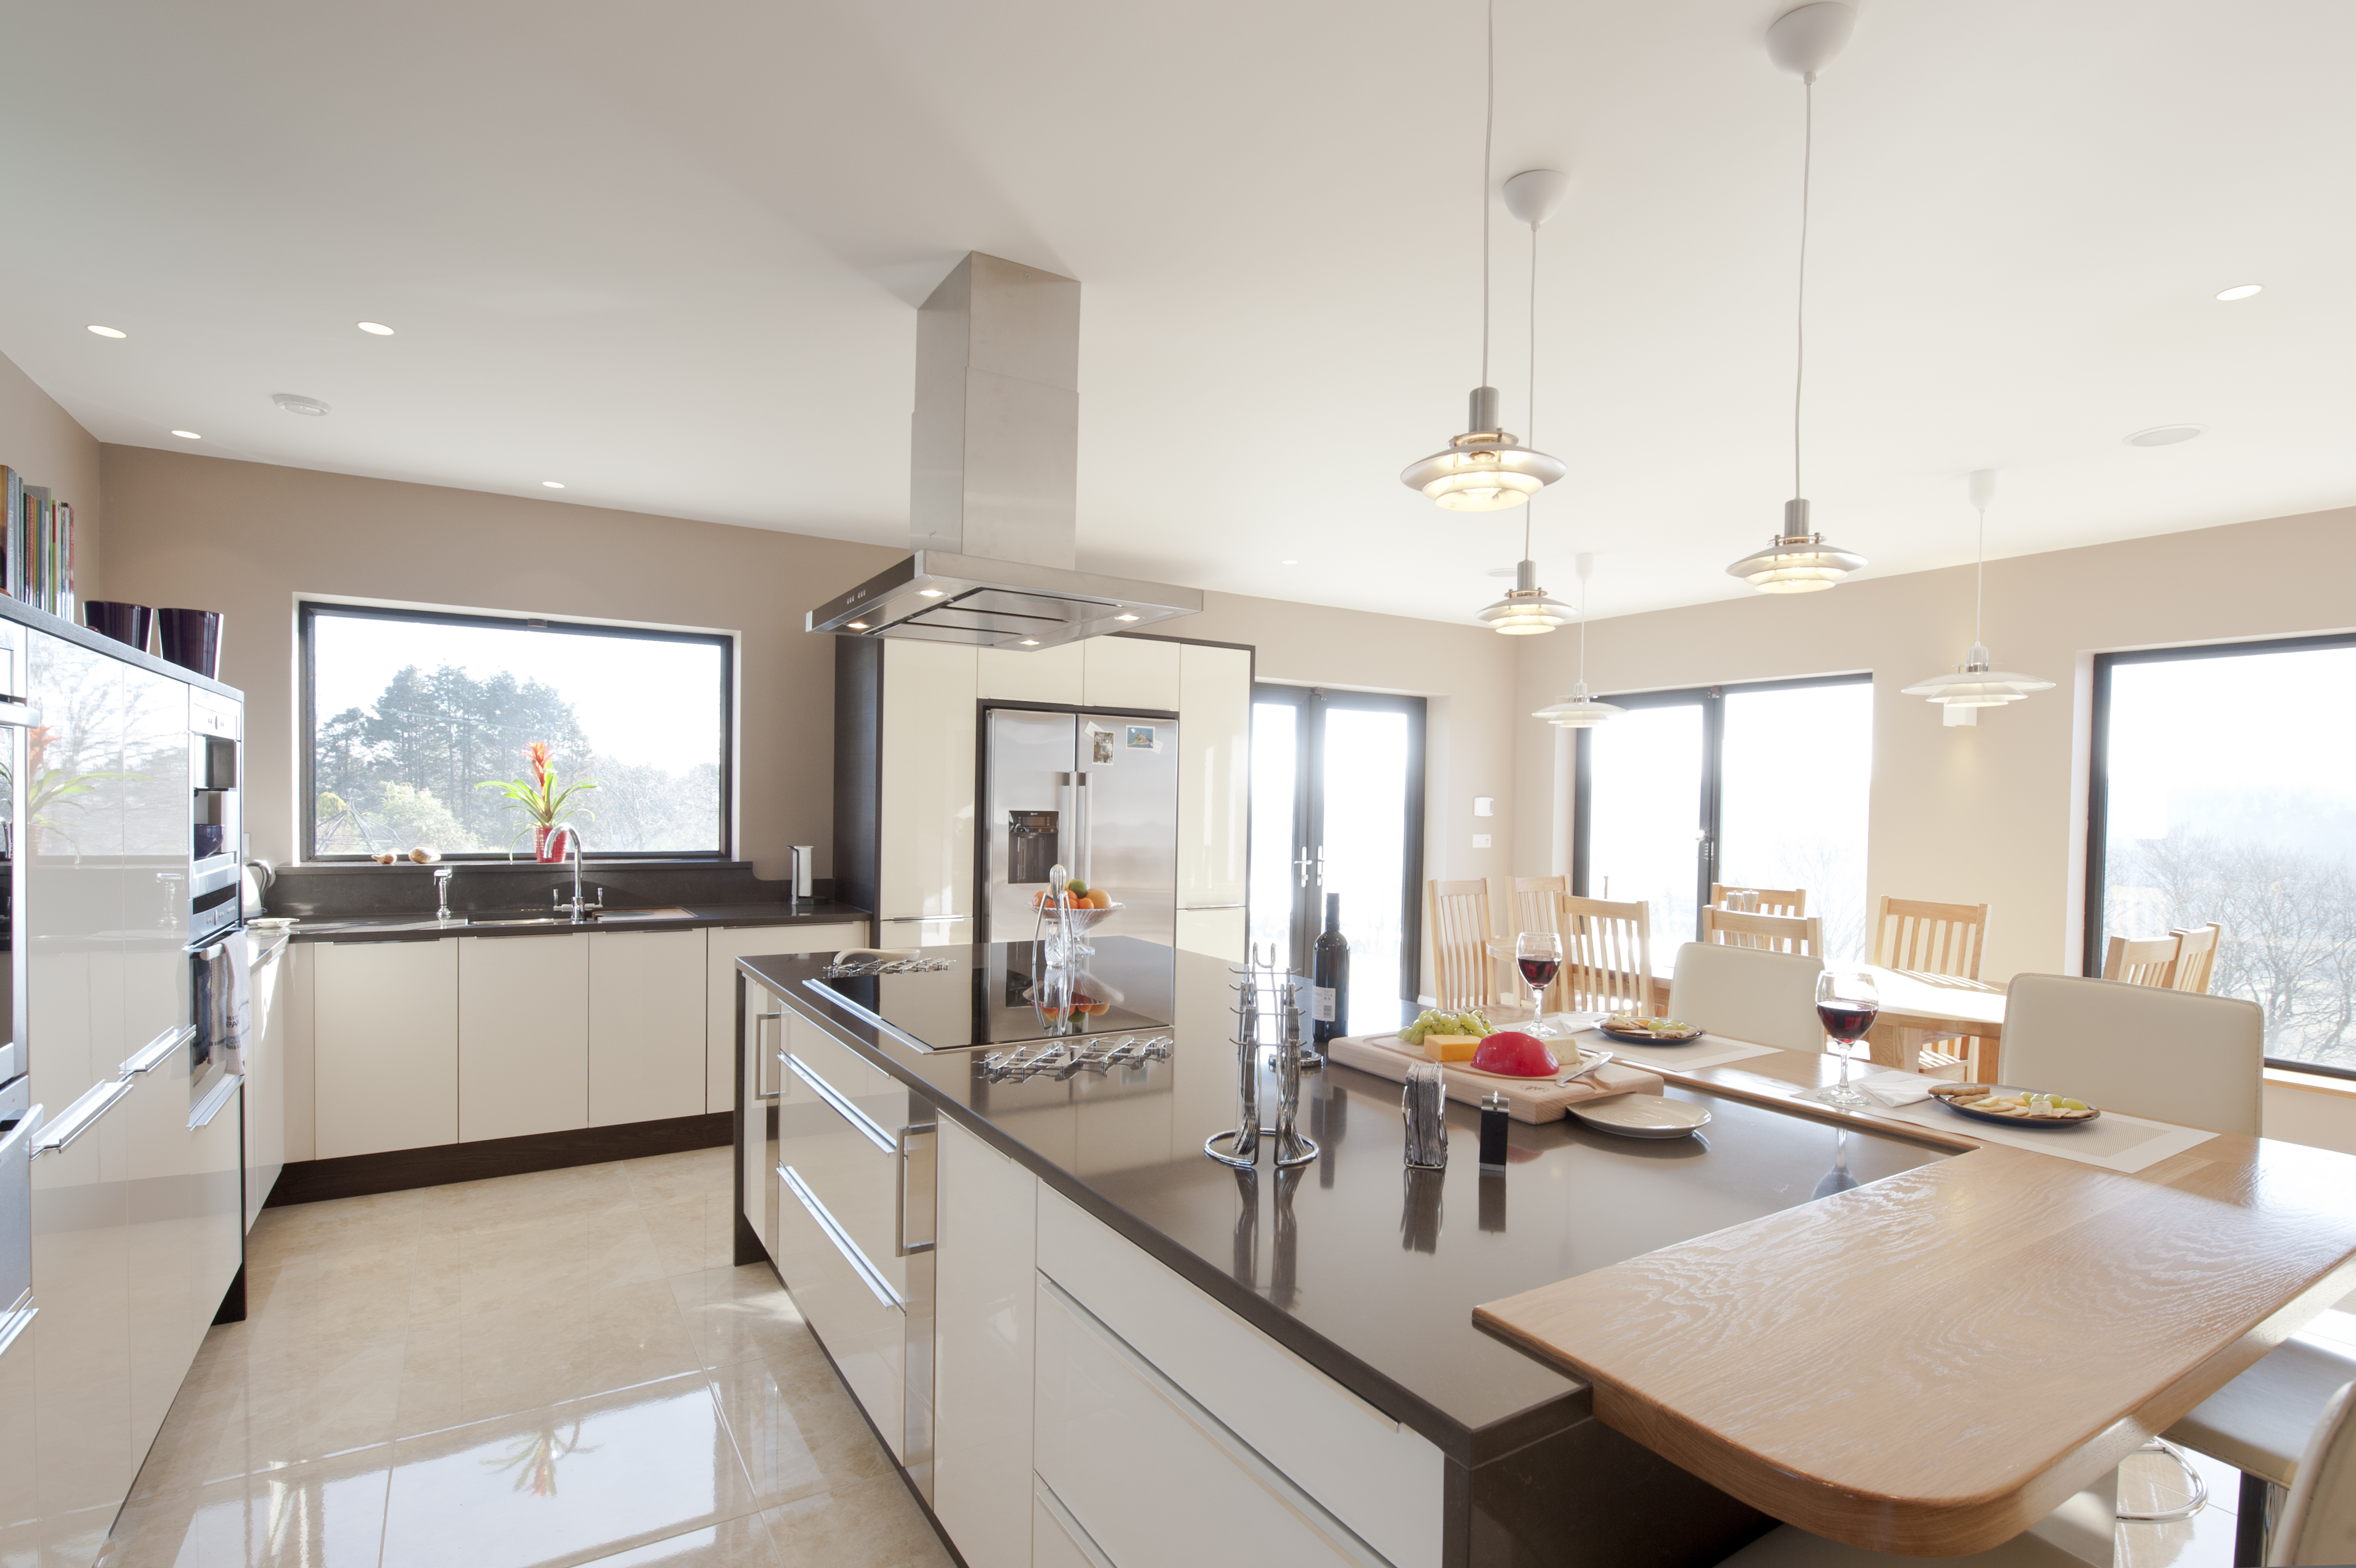 Kitchens Ireland Fitted Kitchens Bedrooms Celtic Interiors Cork